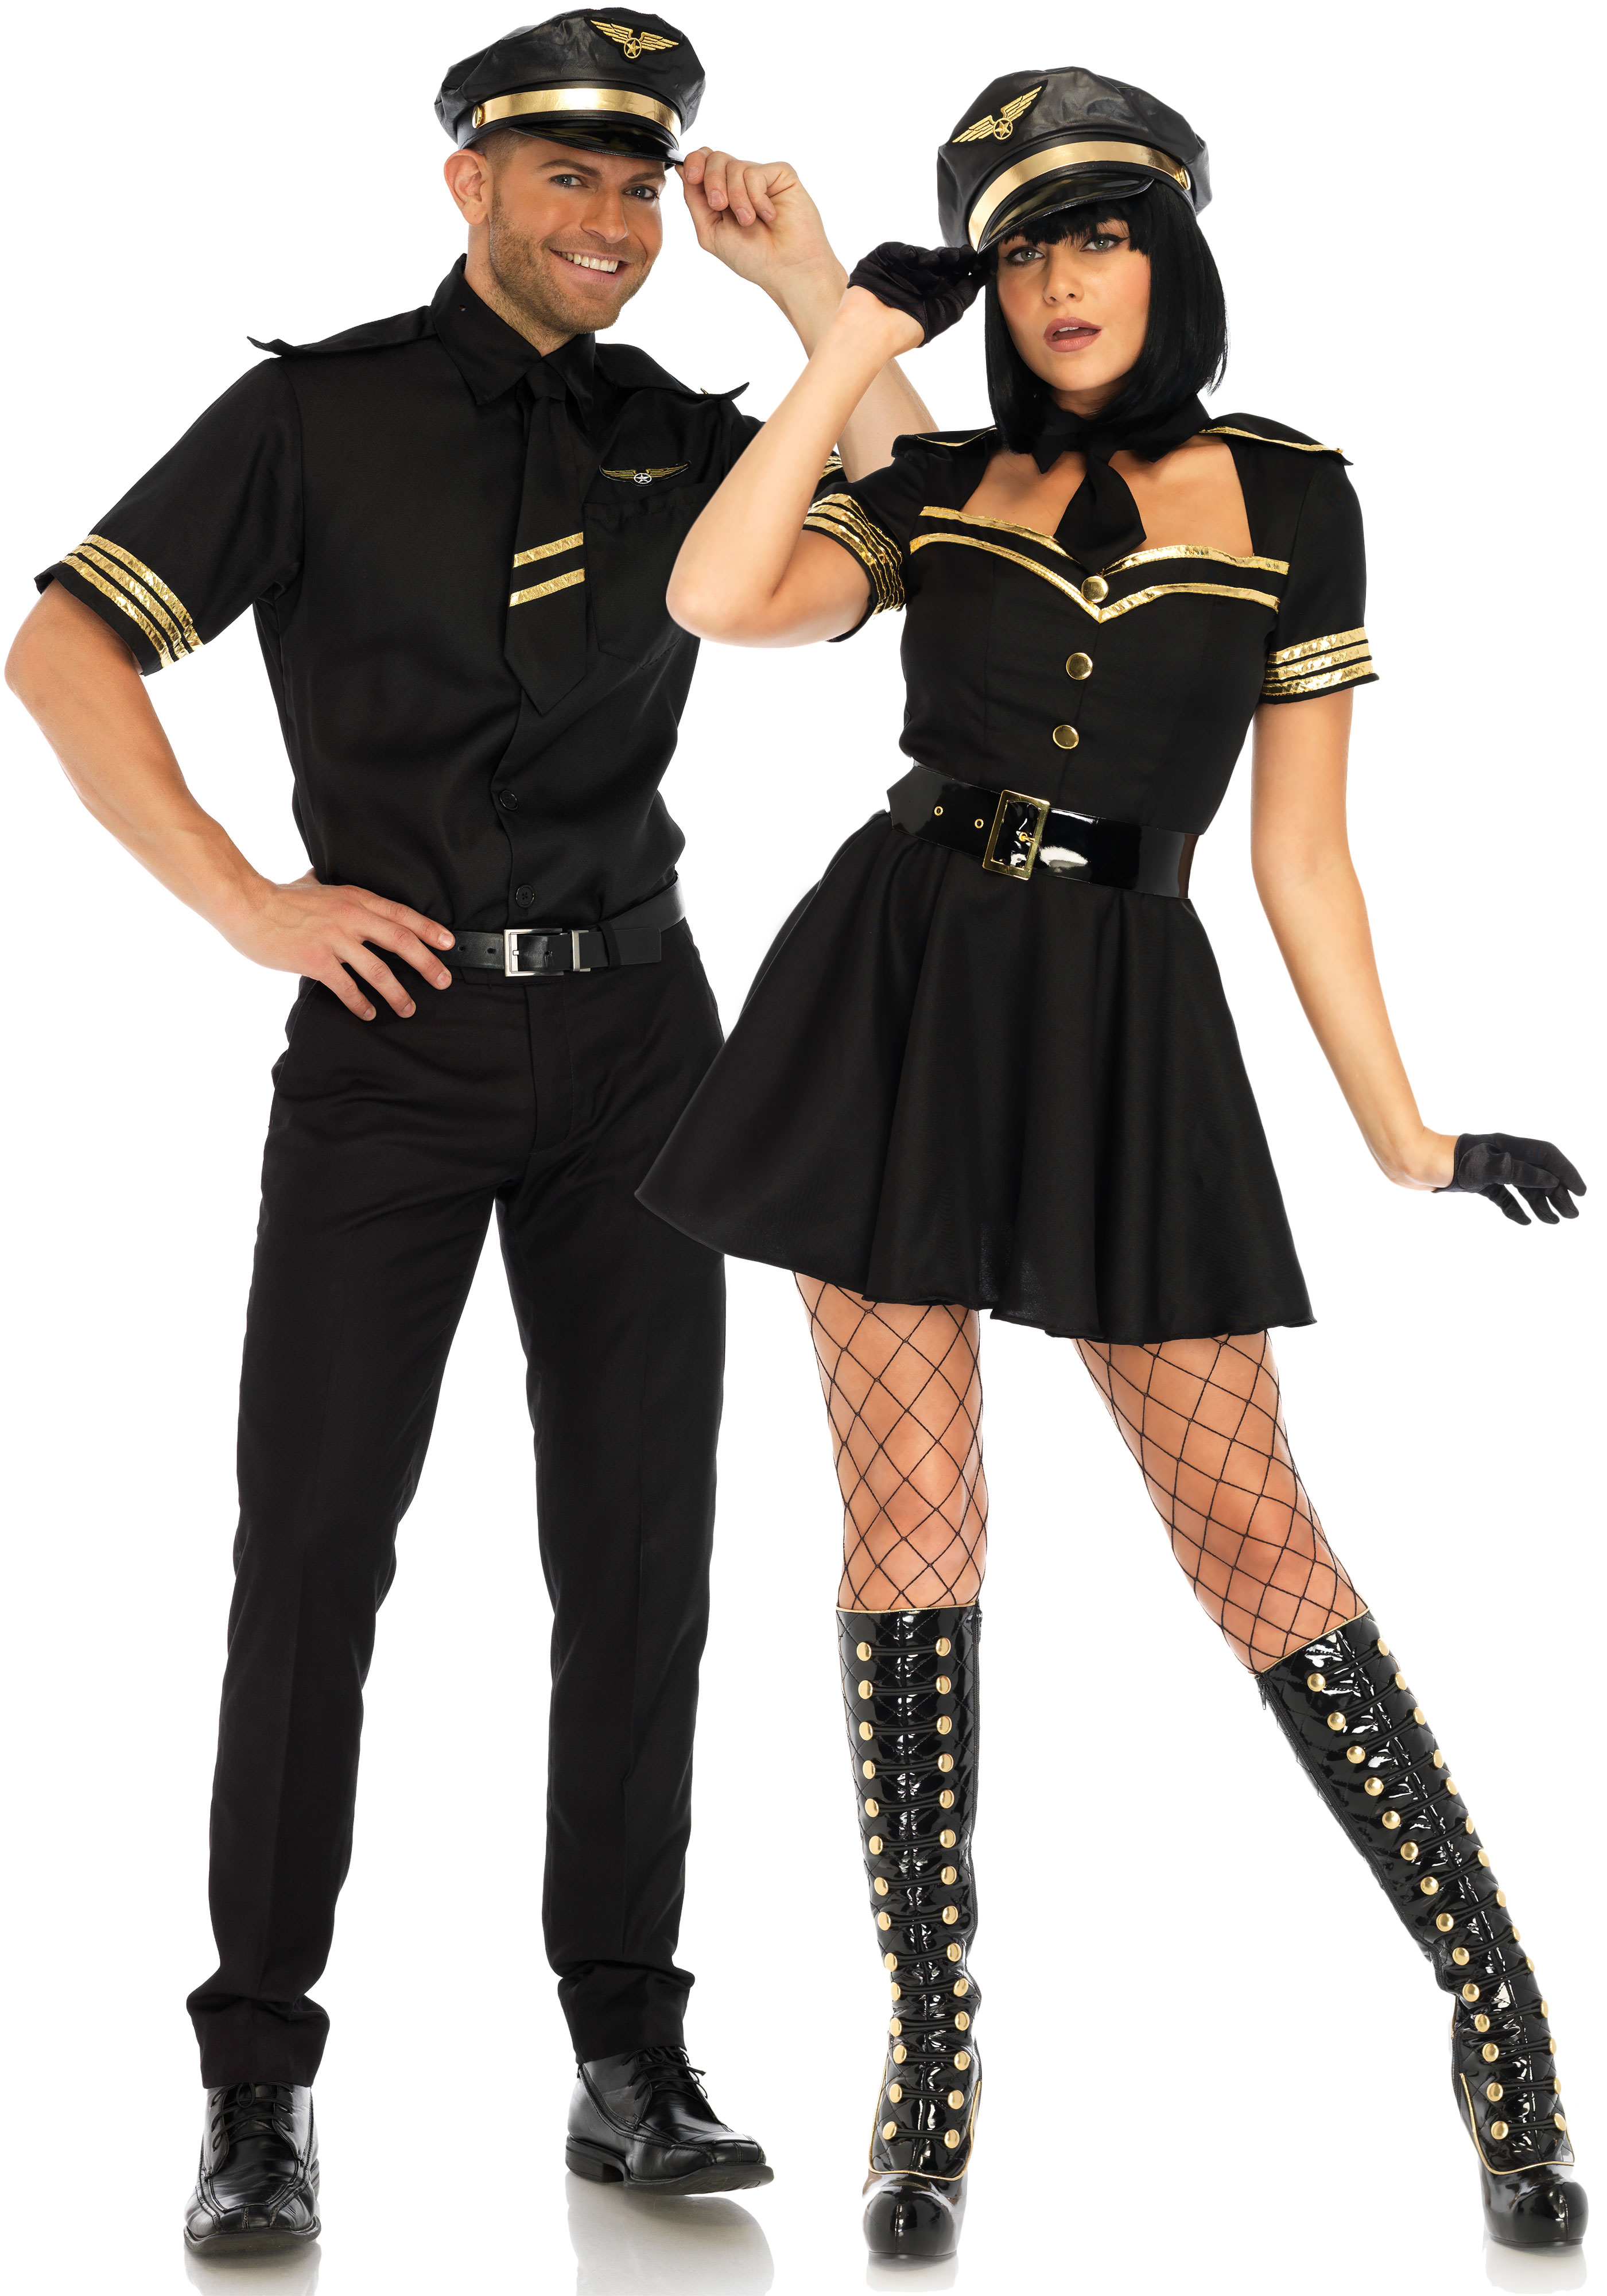 3 PC. Flirty Flight Captain costume, includes gold trimmed dress with keyhole accent with attached neck tie, belt and matching hat with wing detail.